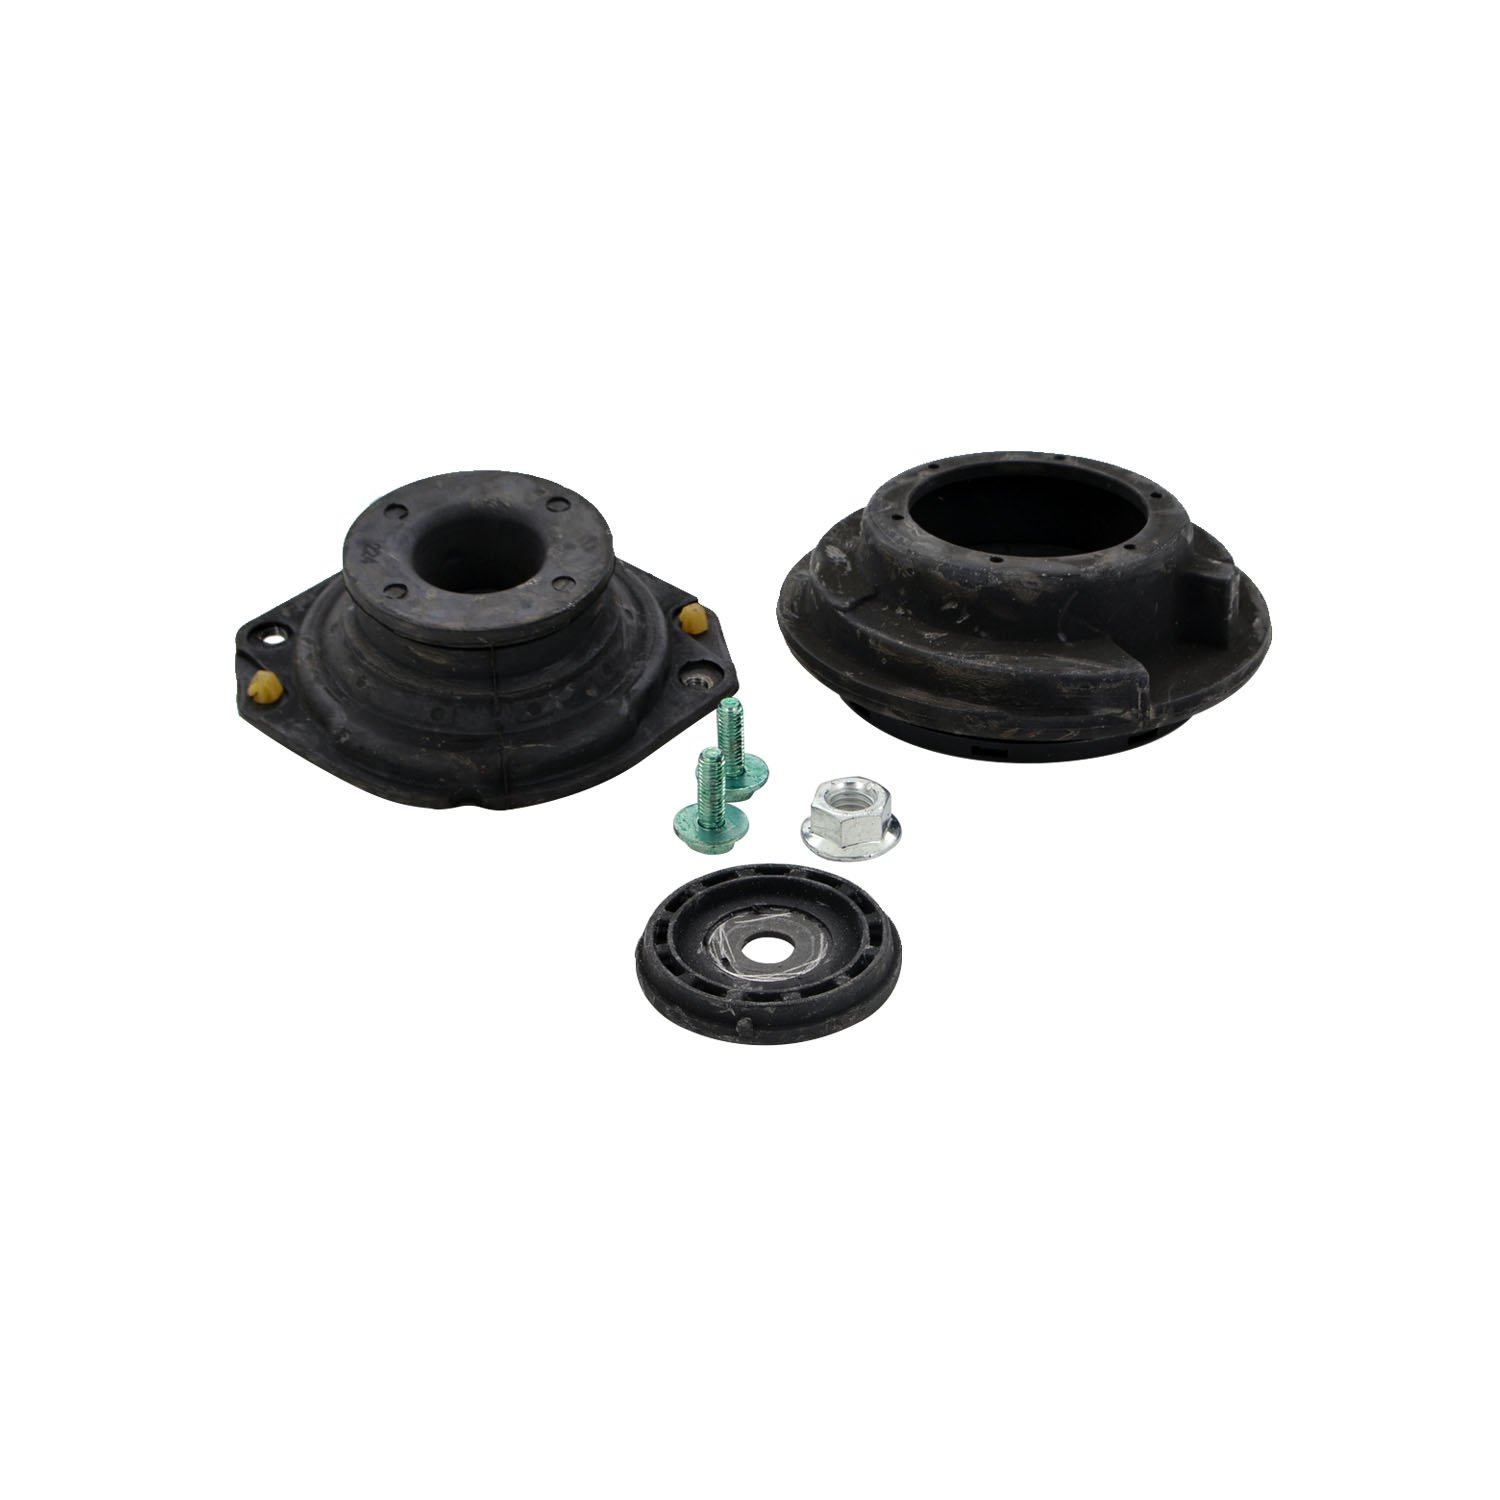 Amazon.com: Eagle BHP 5485 Strut Motor Mount (Renault Laguna Strut Mount V6 3.0L Front Right or Left): Automotive